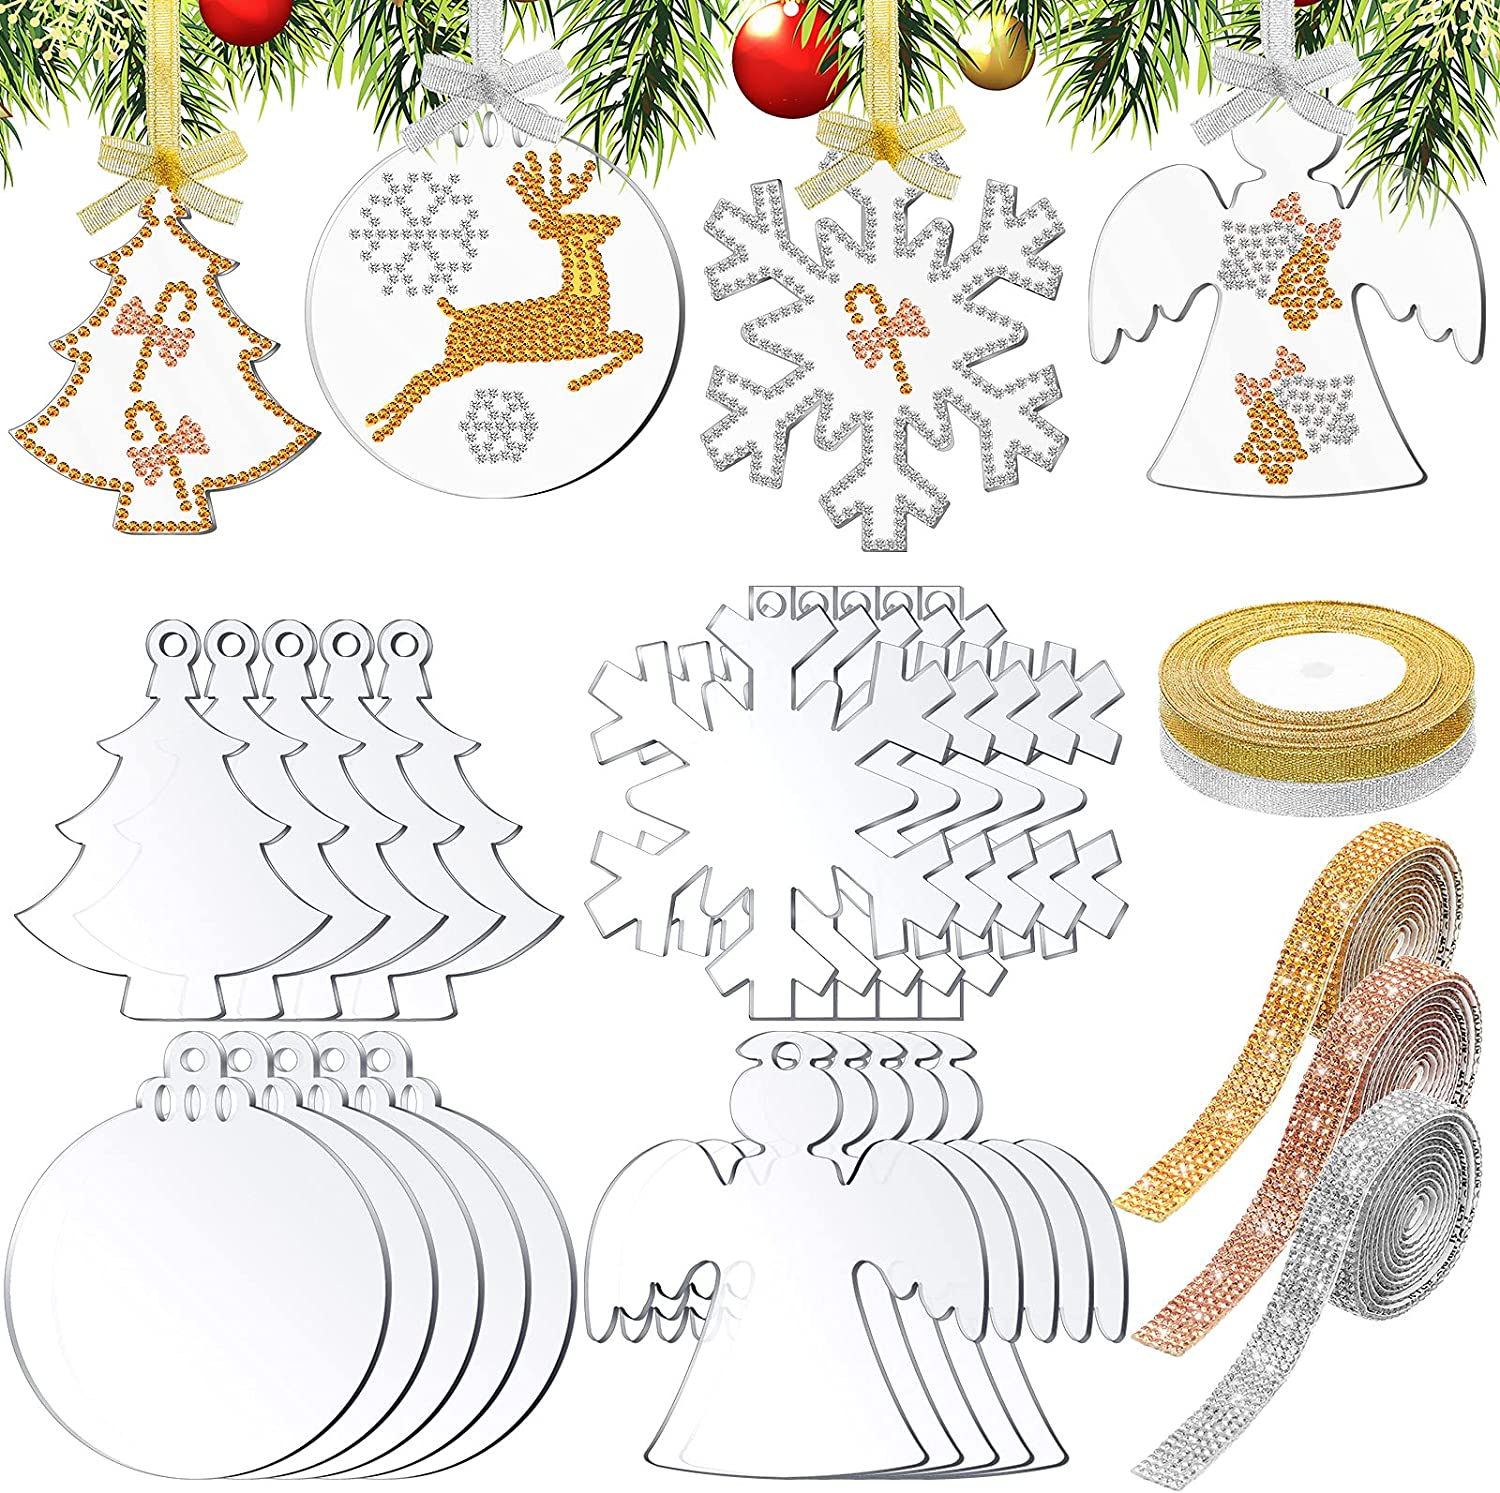 20 Pieces 3 Inch Acrylic Ornaments Blanks Christmas Ornaments Christmas Decor3 Rhinestone Adhesive Rhinestone Strips 2 Gold Silver Satin Ribbons for Christmas Tree Decoration Home Party Supplies